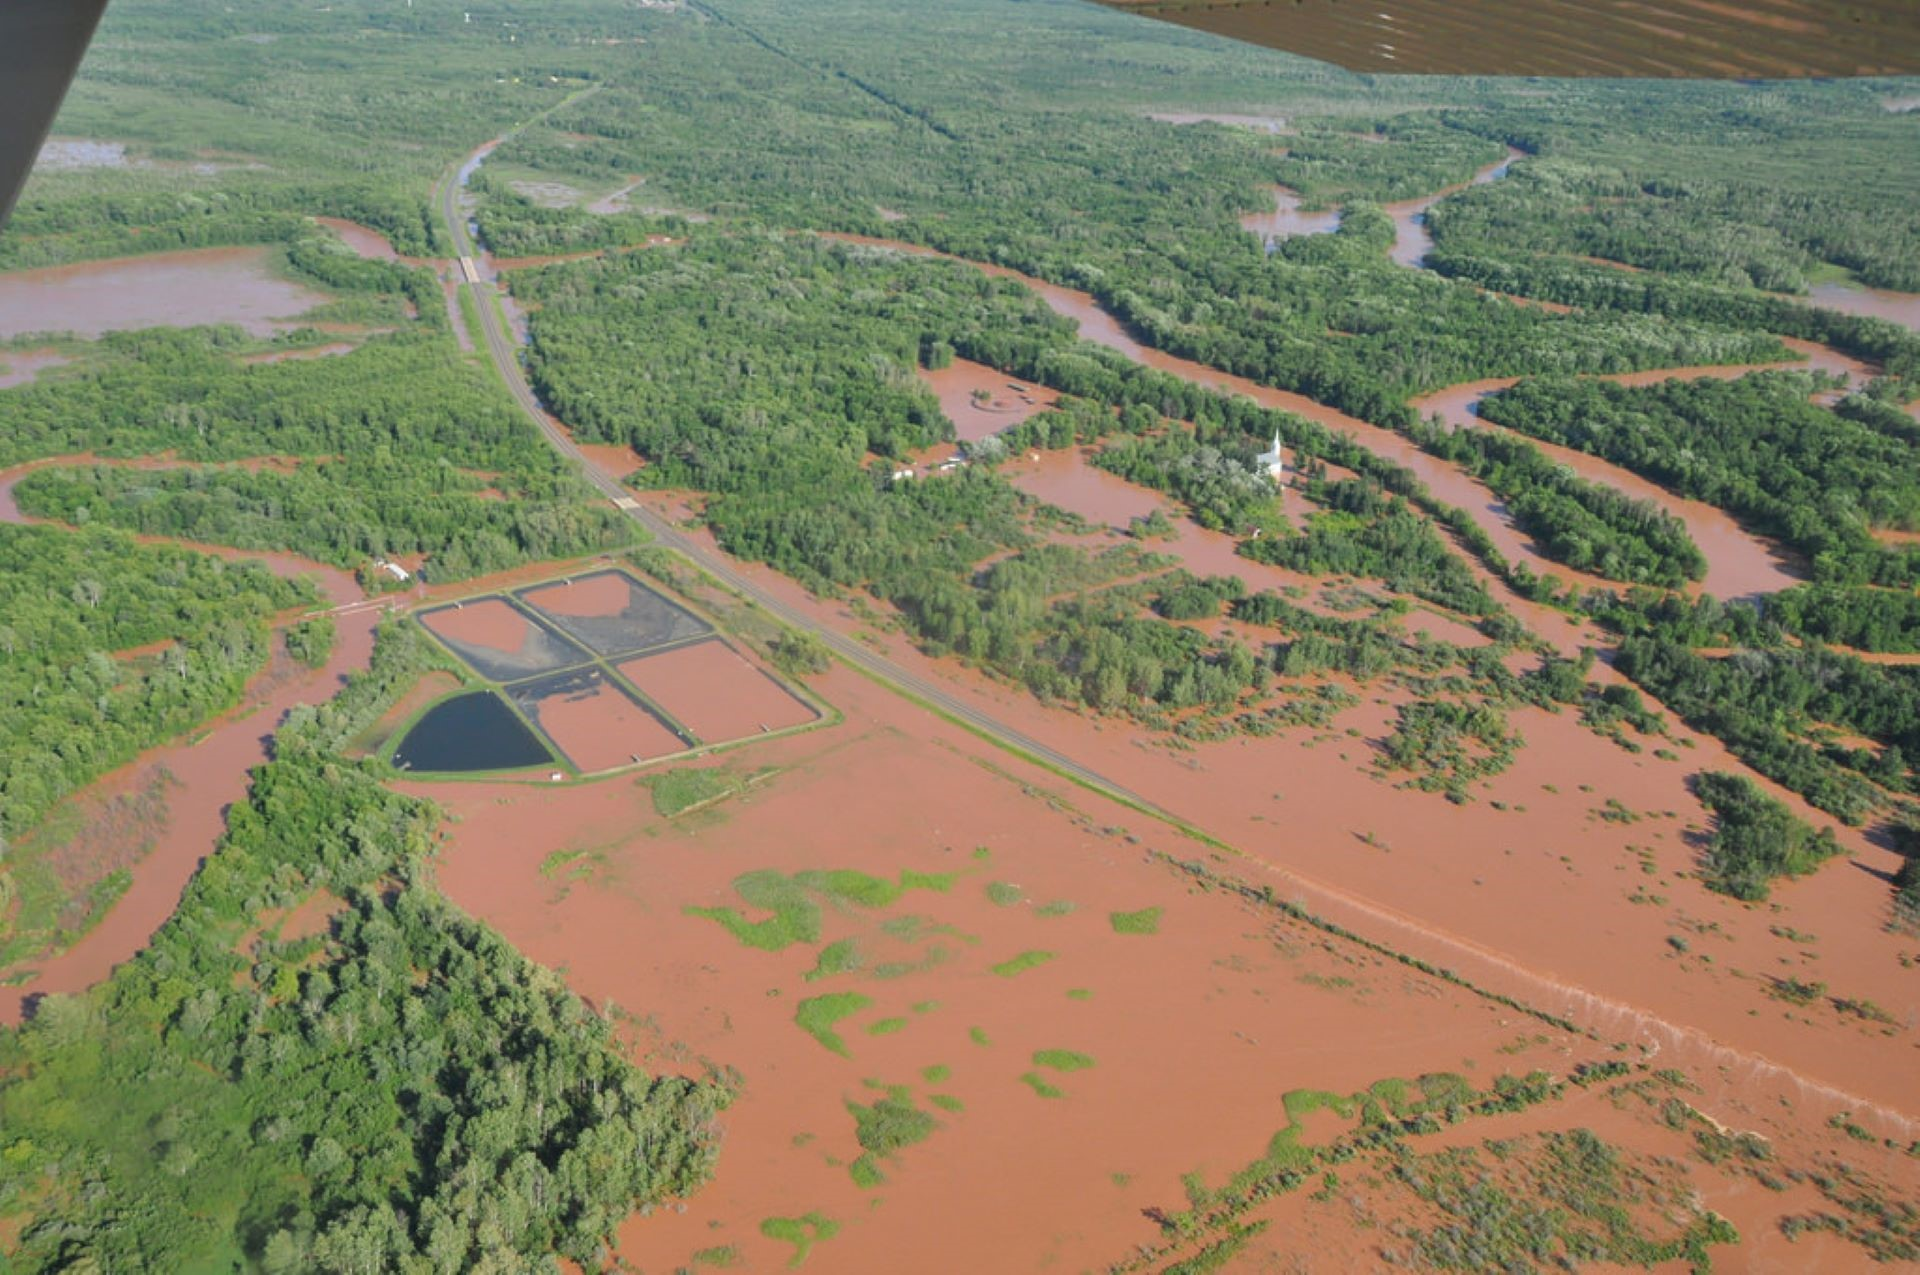 In June 2017, Michigan's Saginaw Bay region weathereda stormthat caused major flooding to roads, homes, businesses and agriculture, and a state of emergency was declared in Bay, Isabella and Midland counties.Credit: Michigan Sea Grant